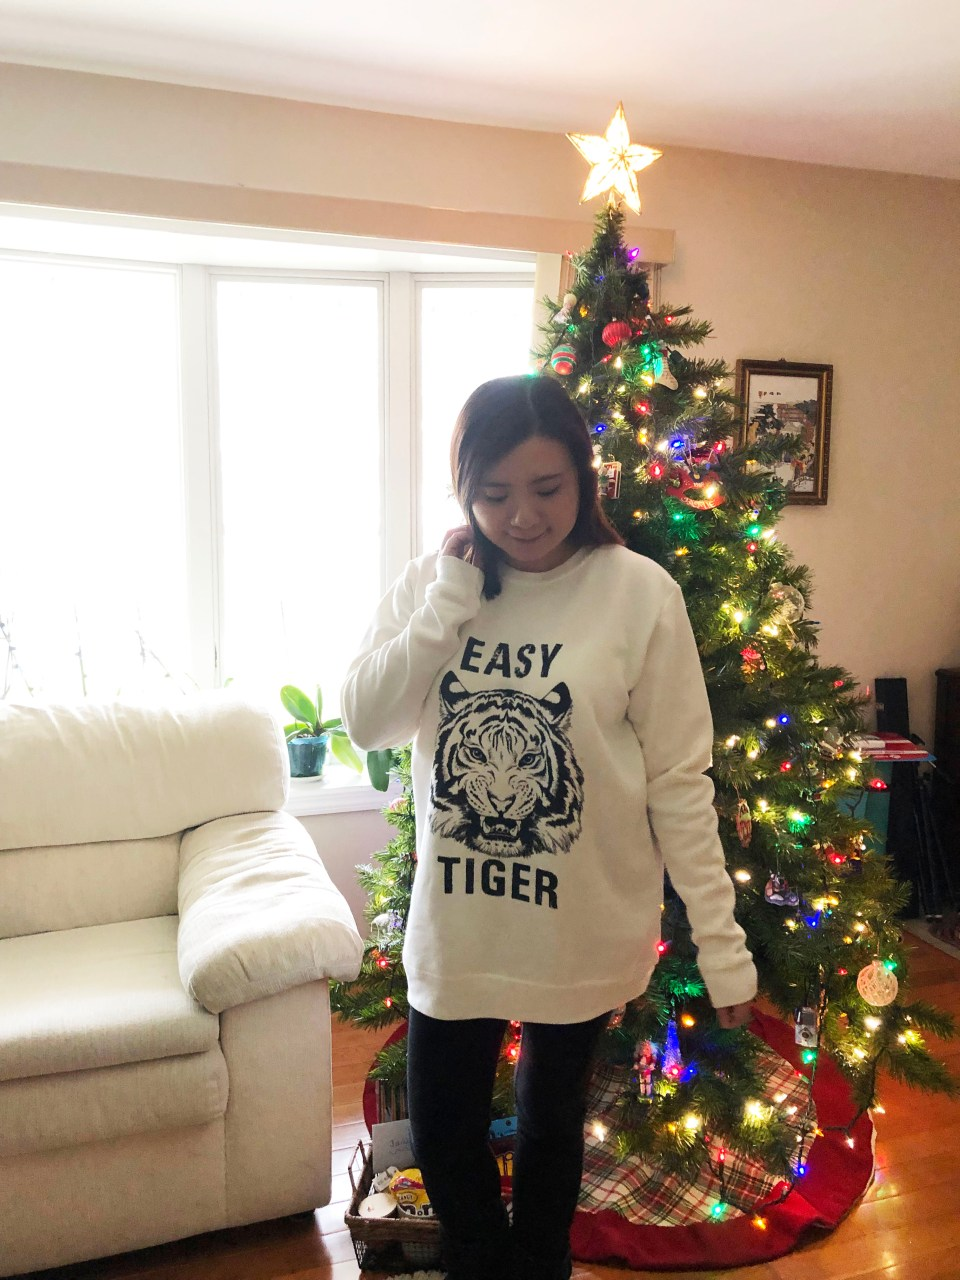 Easy Tiger Sweatshirt 2